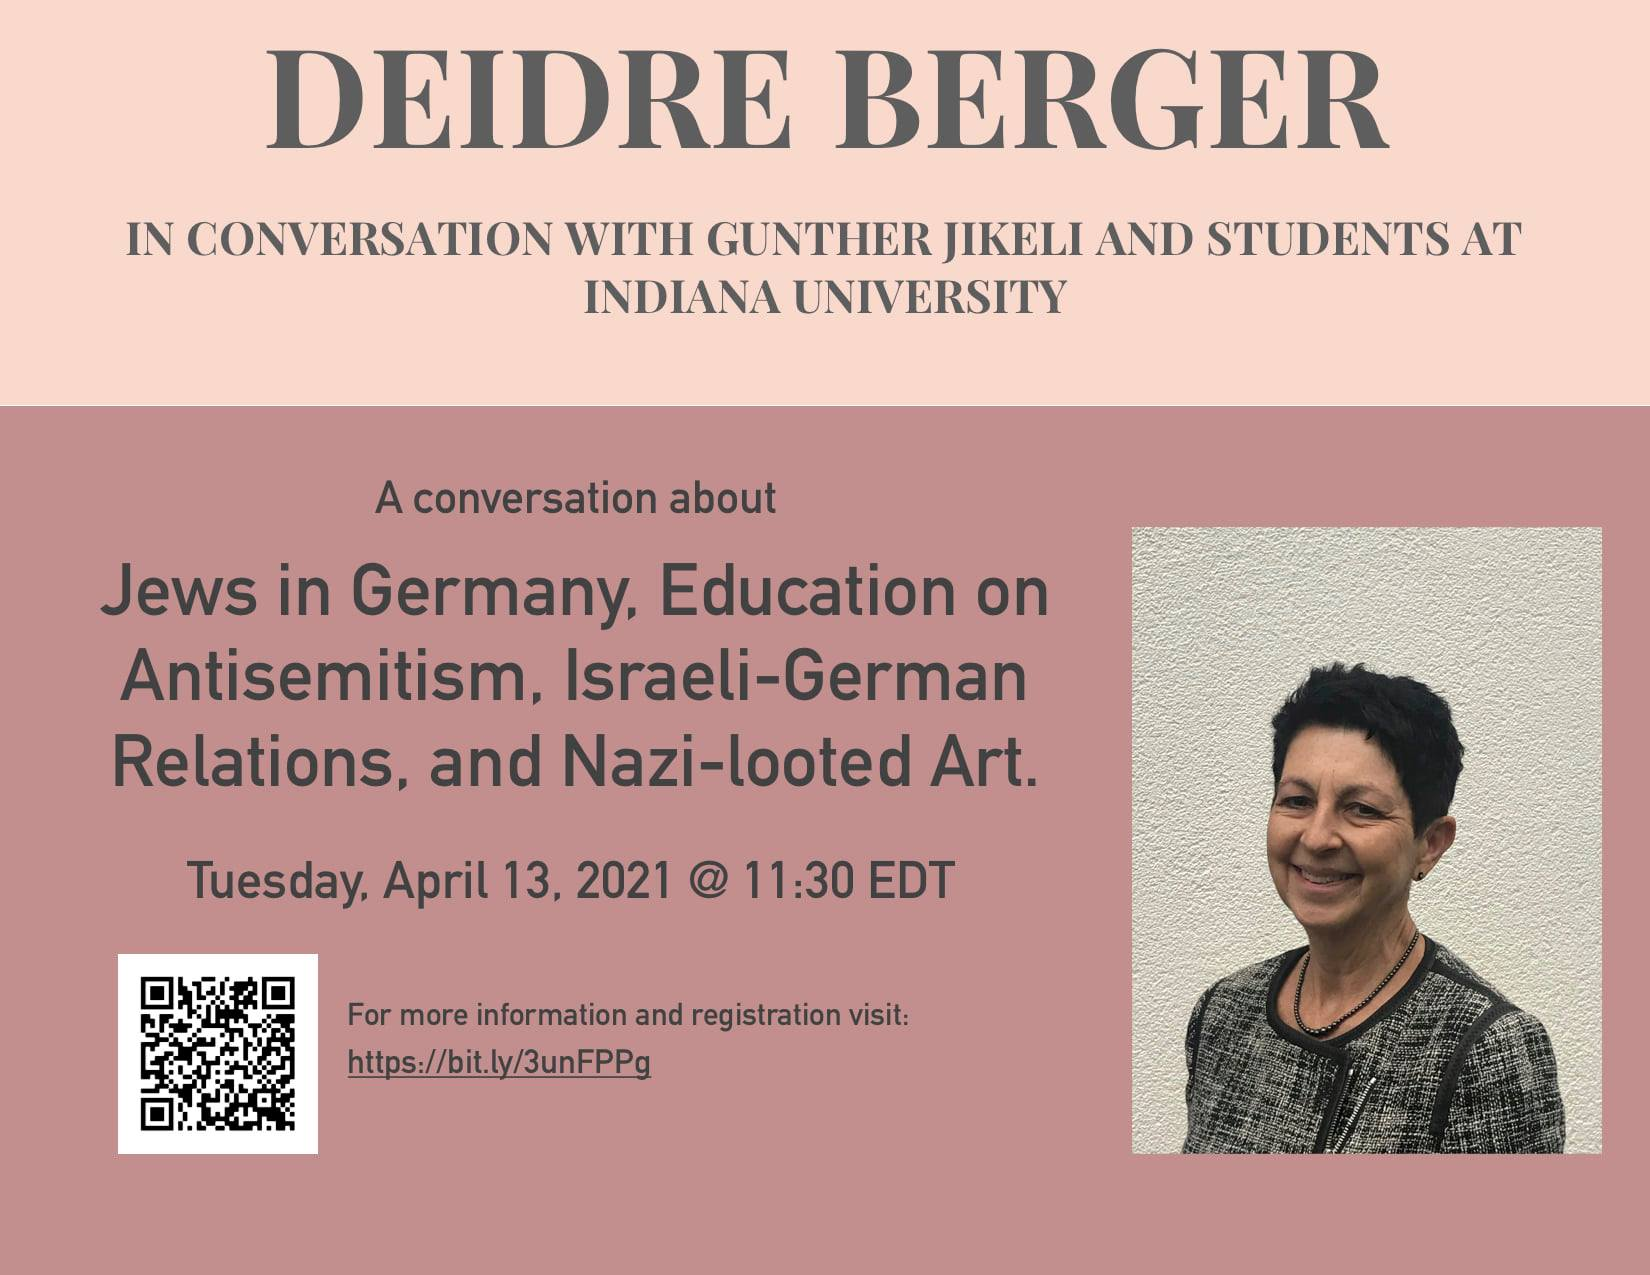 Deidre Berger in conversation with Günther Jikeli: Jews in Germany, Antisemitism, Israel-German relations and more...